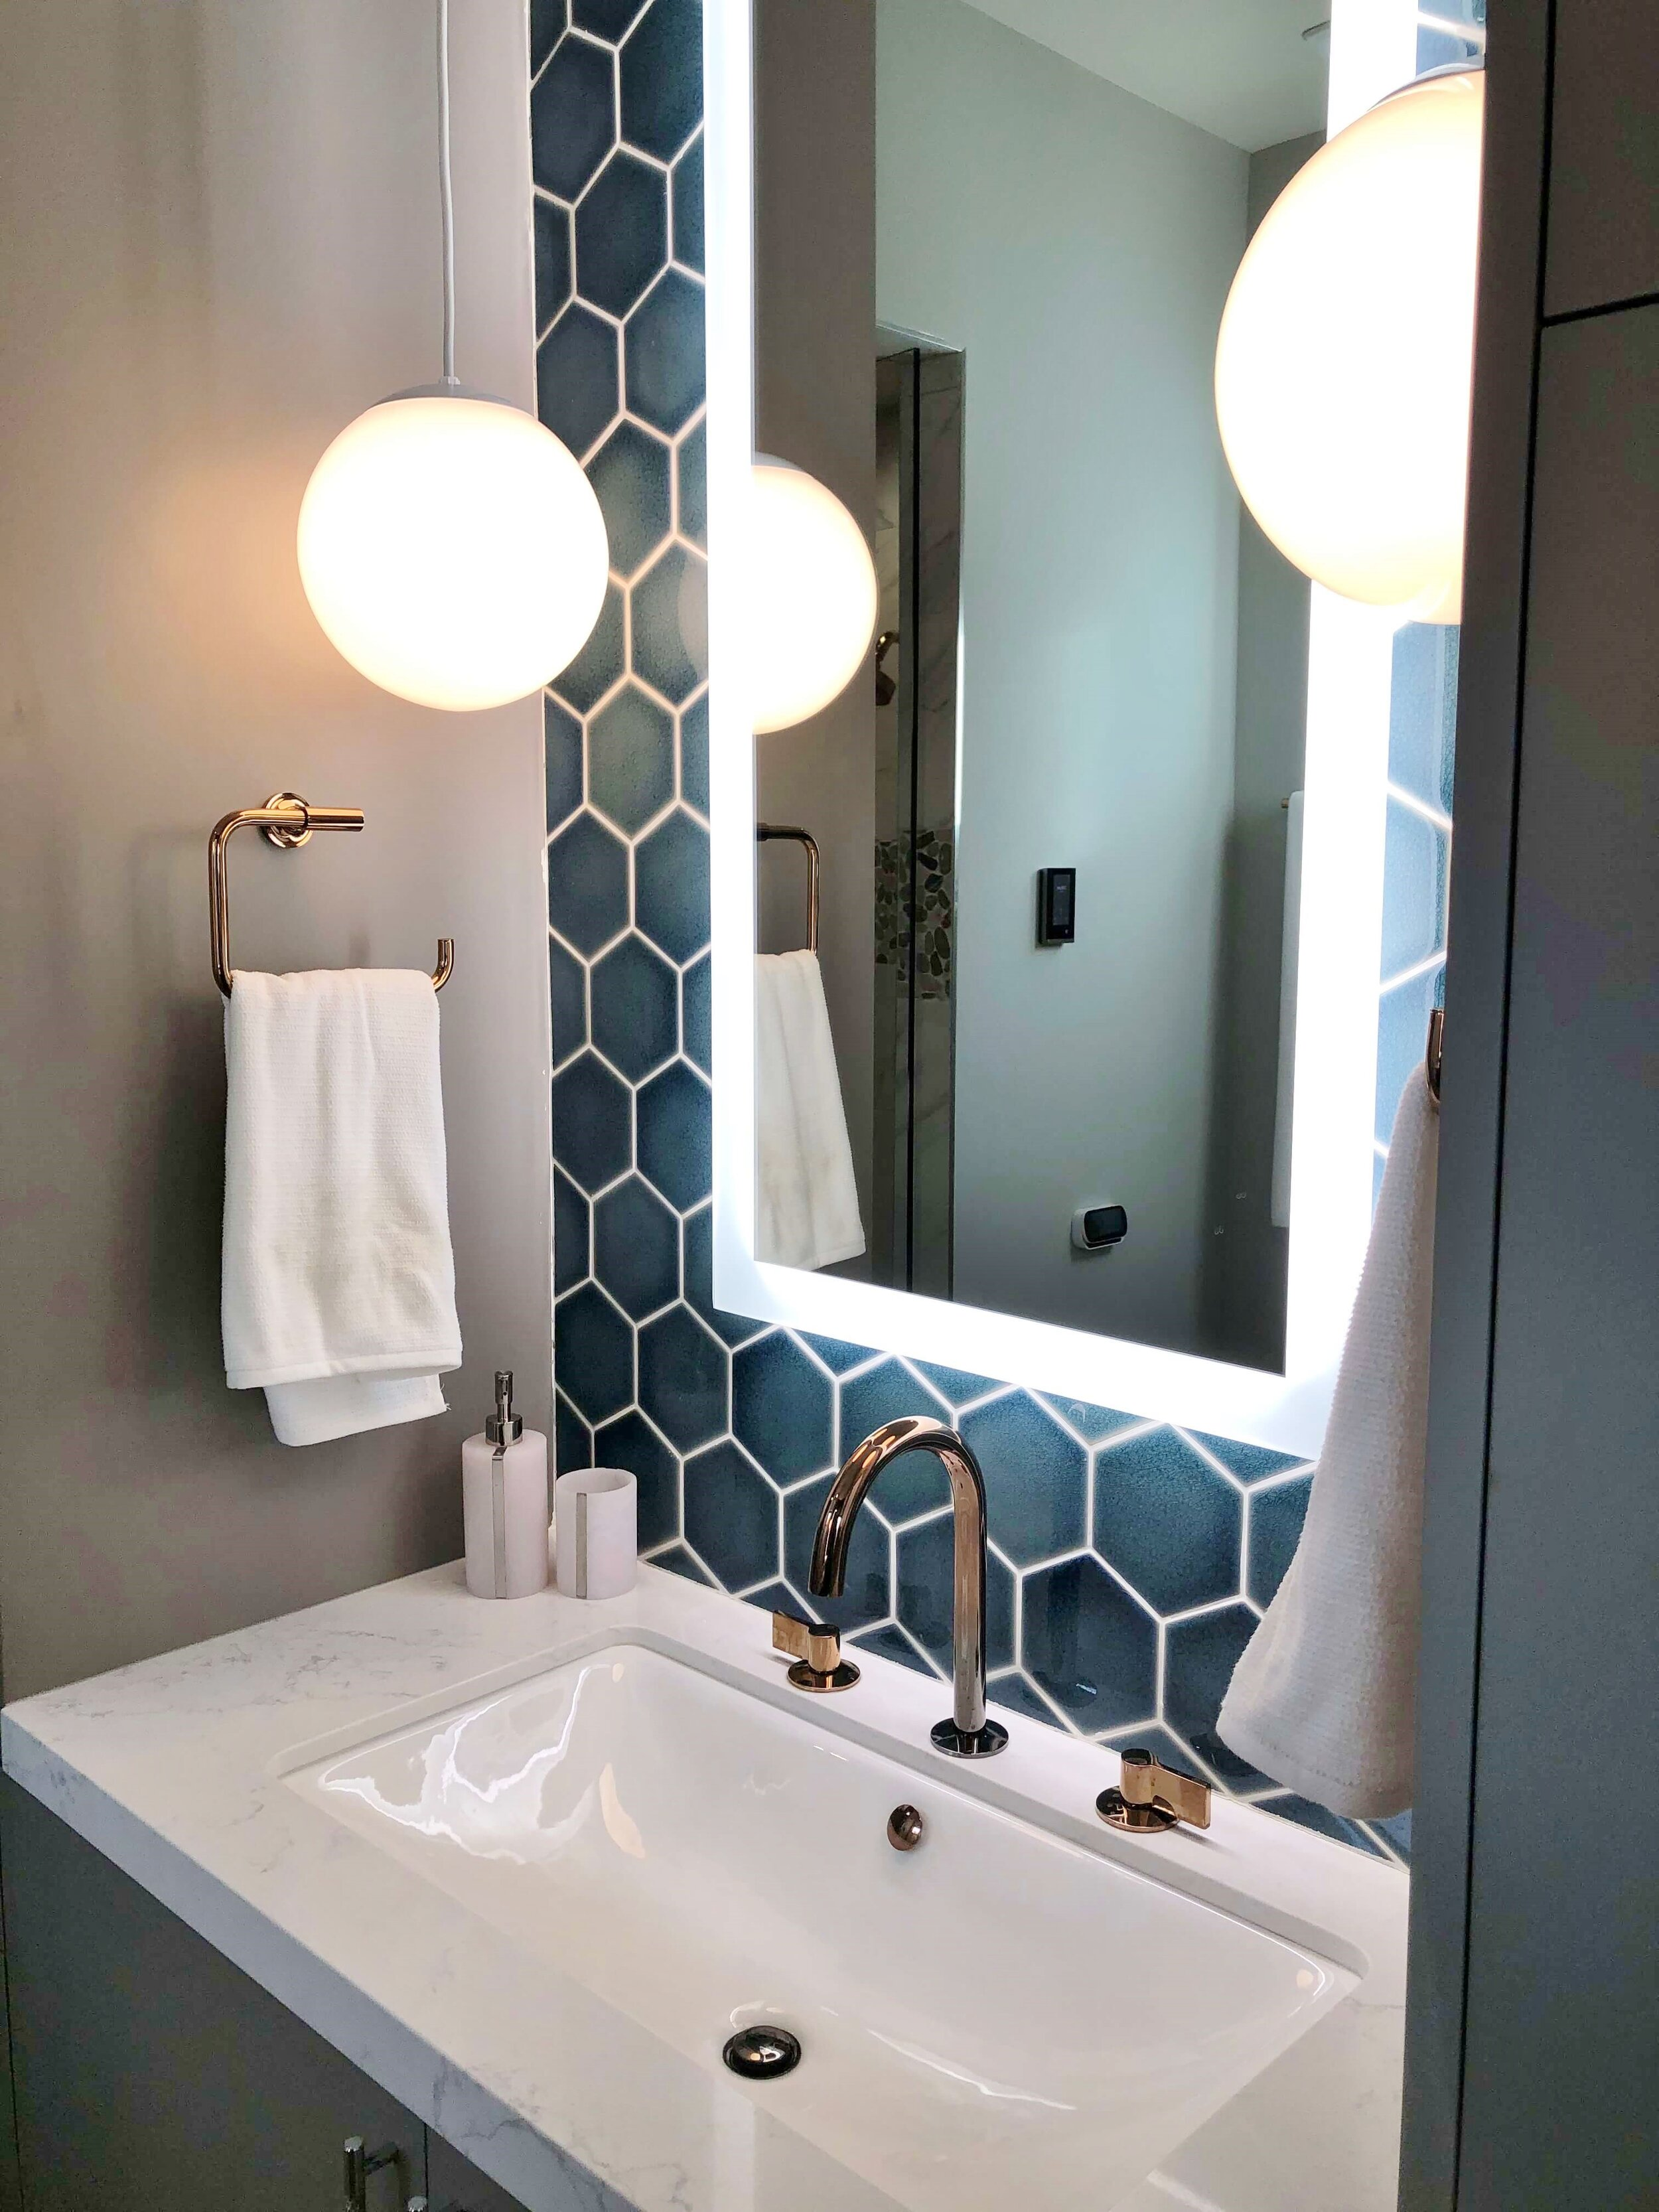 A Beautiful Alternative For Lighting In The Bathroom Designed